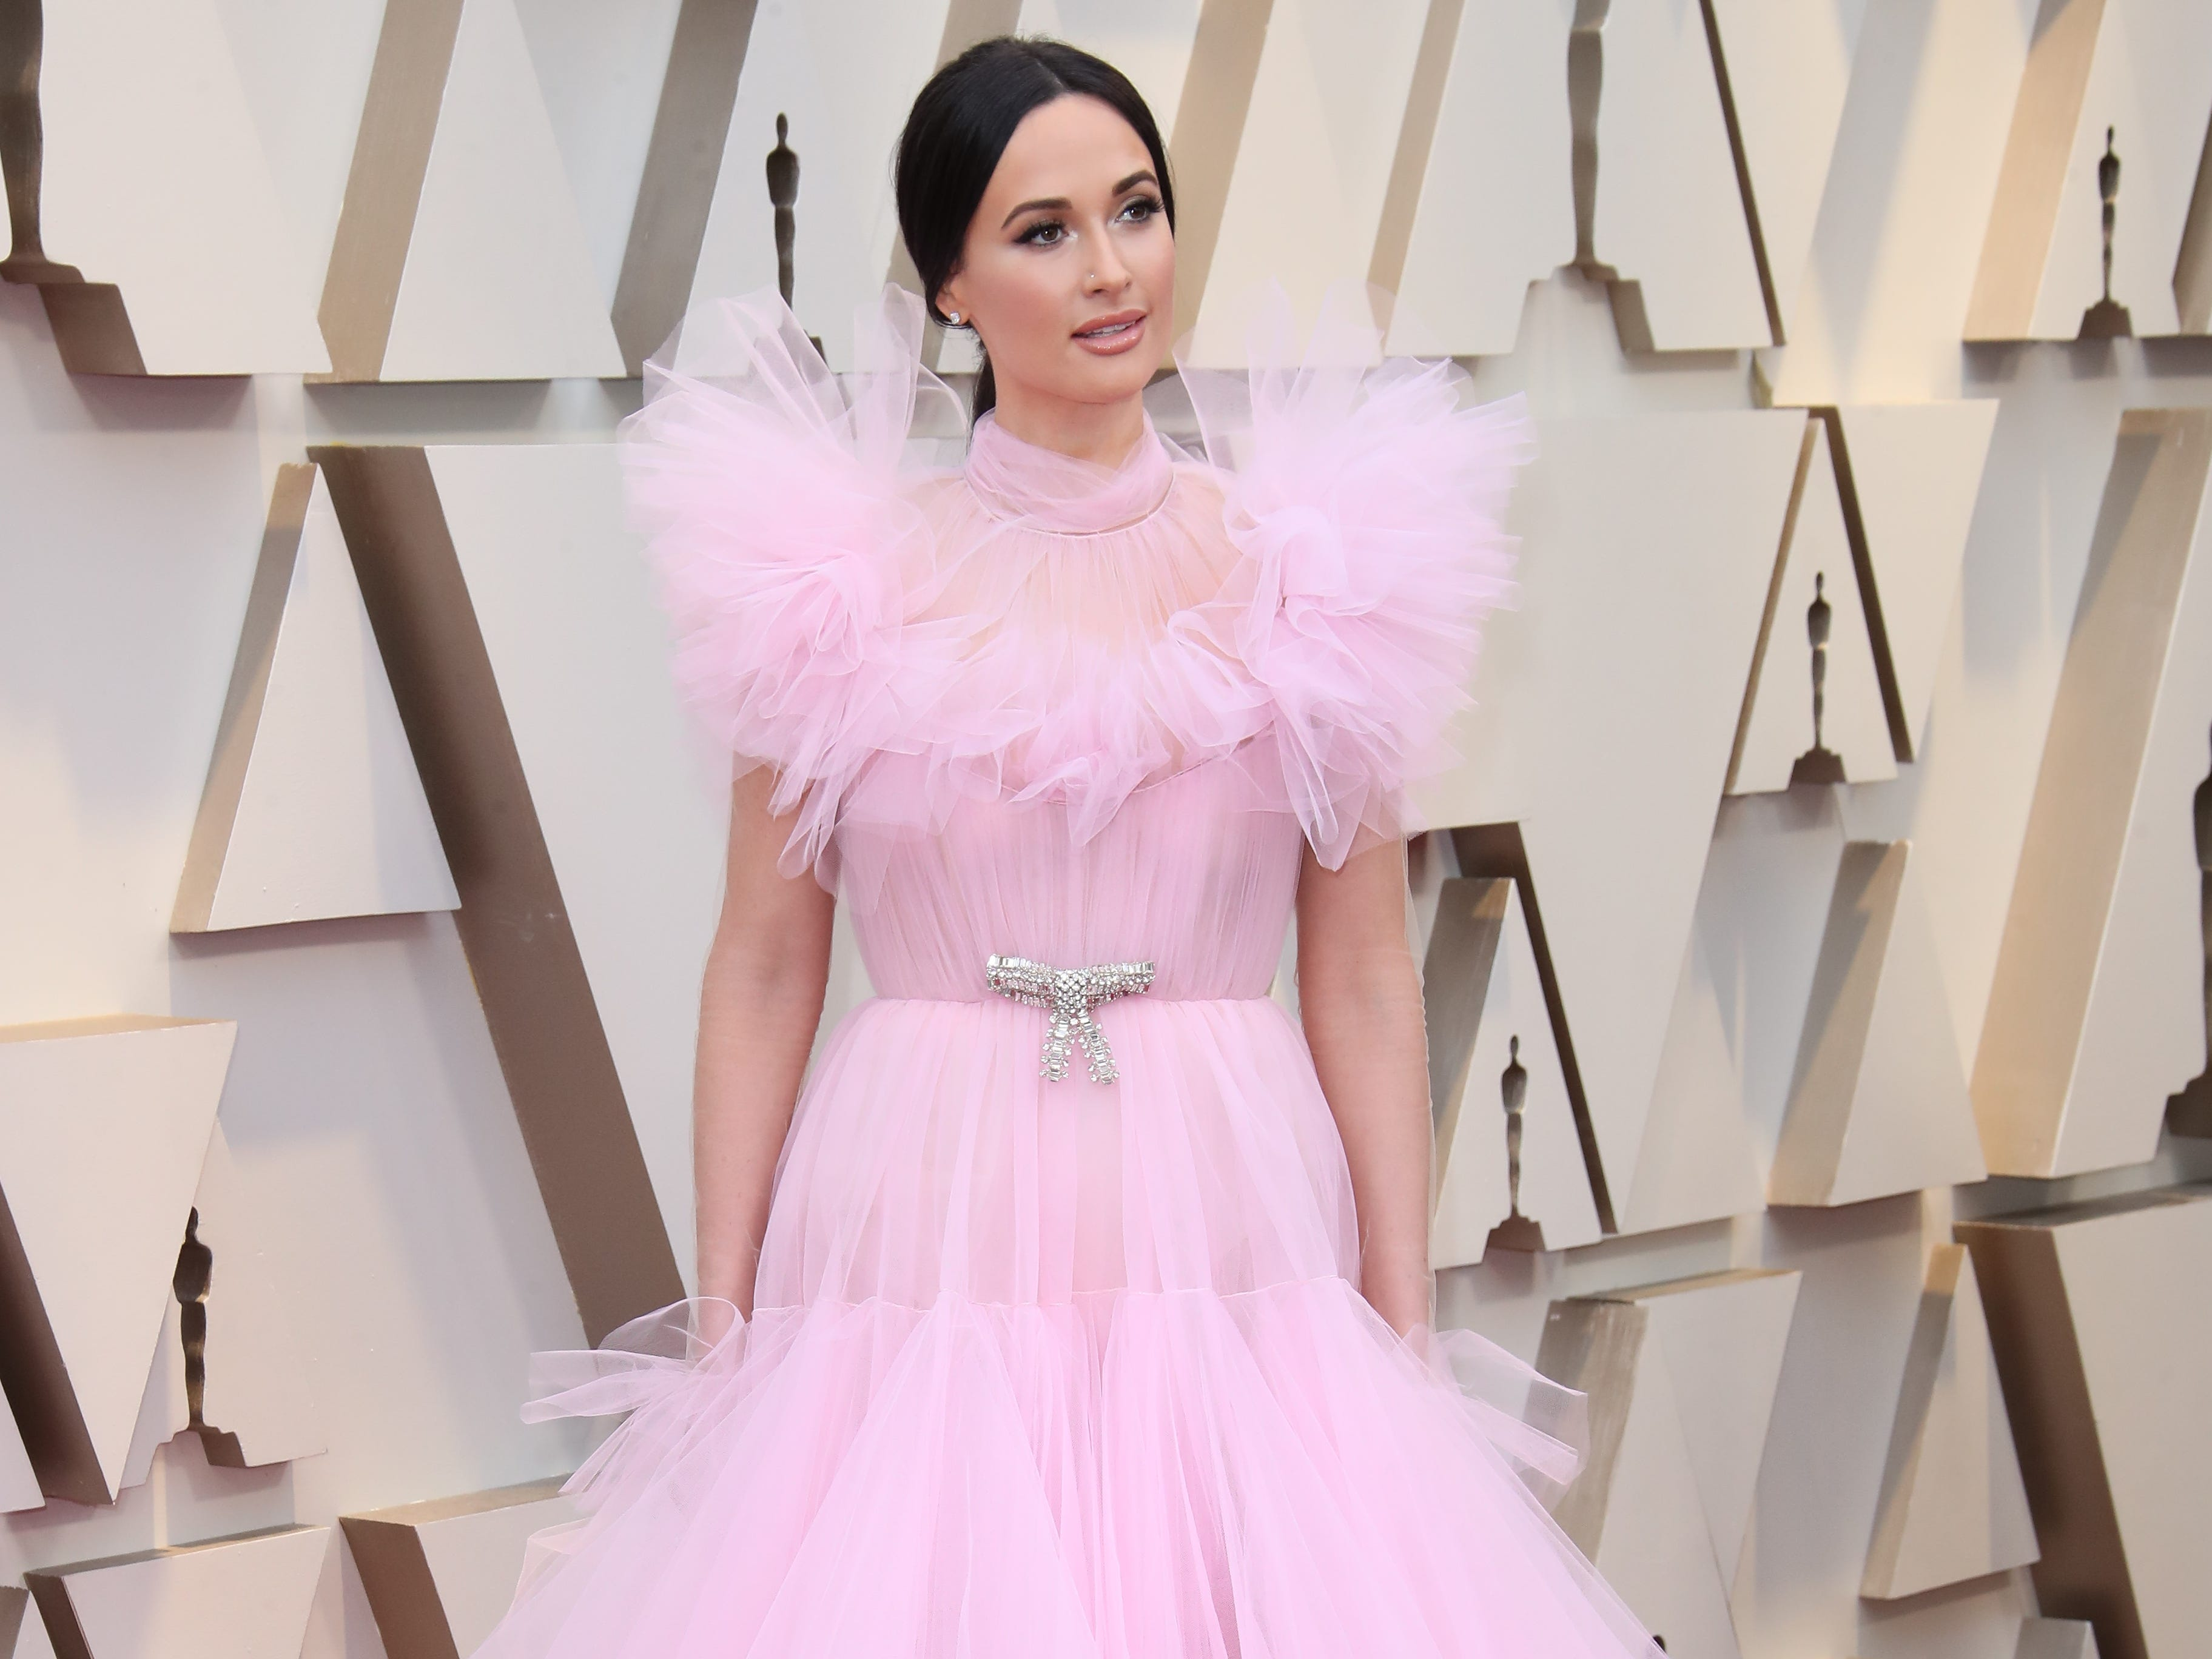 February 24, 2019; Los Angeles, CA, USA; Kacey Musgraves arrives at the 91st Academy Awards at the Dolby Theatre. Mandatory Credit: Dan MacMedan-USA TODAY NETWORK (Via OlyDrop)